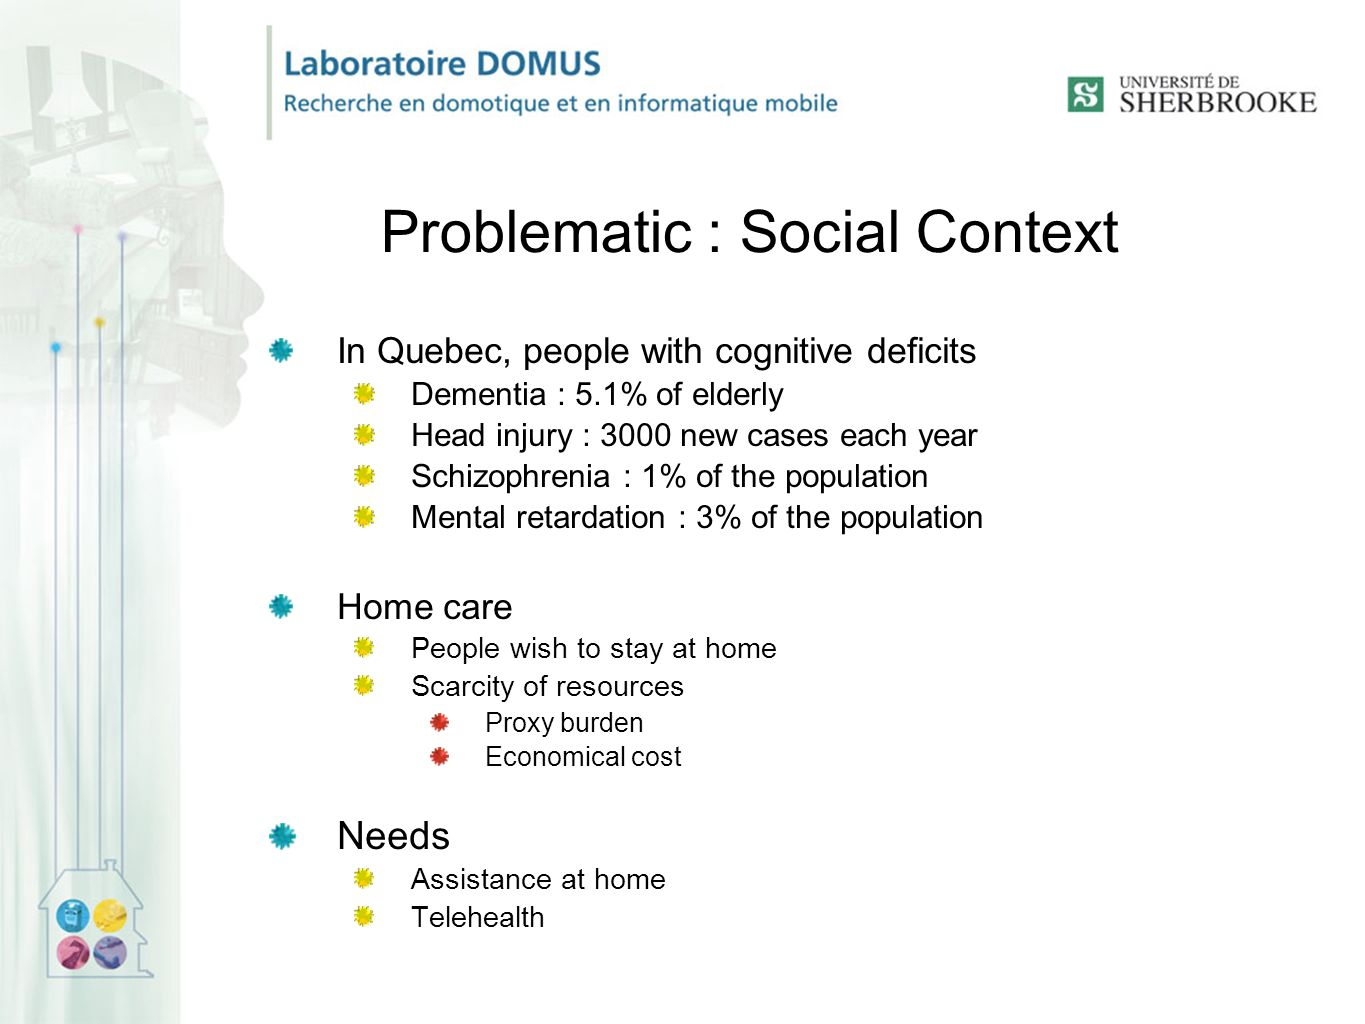 Smart home and home care OBJECTIVES Facilitate stay at home for people with cognitive impairments Compensate cognitive deficits thanks to environnemental cues Appropriated to the context Personnalized According to the cognitive deficits Easy to use Put caregivers in the loop Reduce anxiety and burden Facilitate communication with caregivers